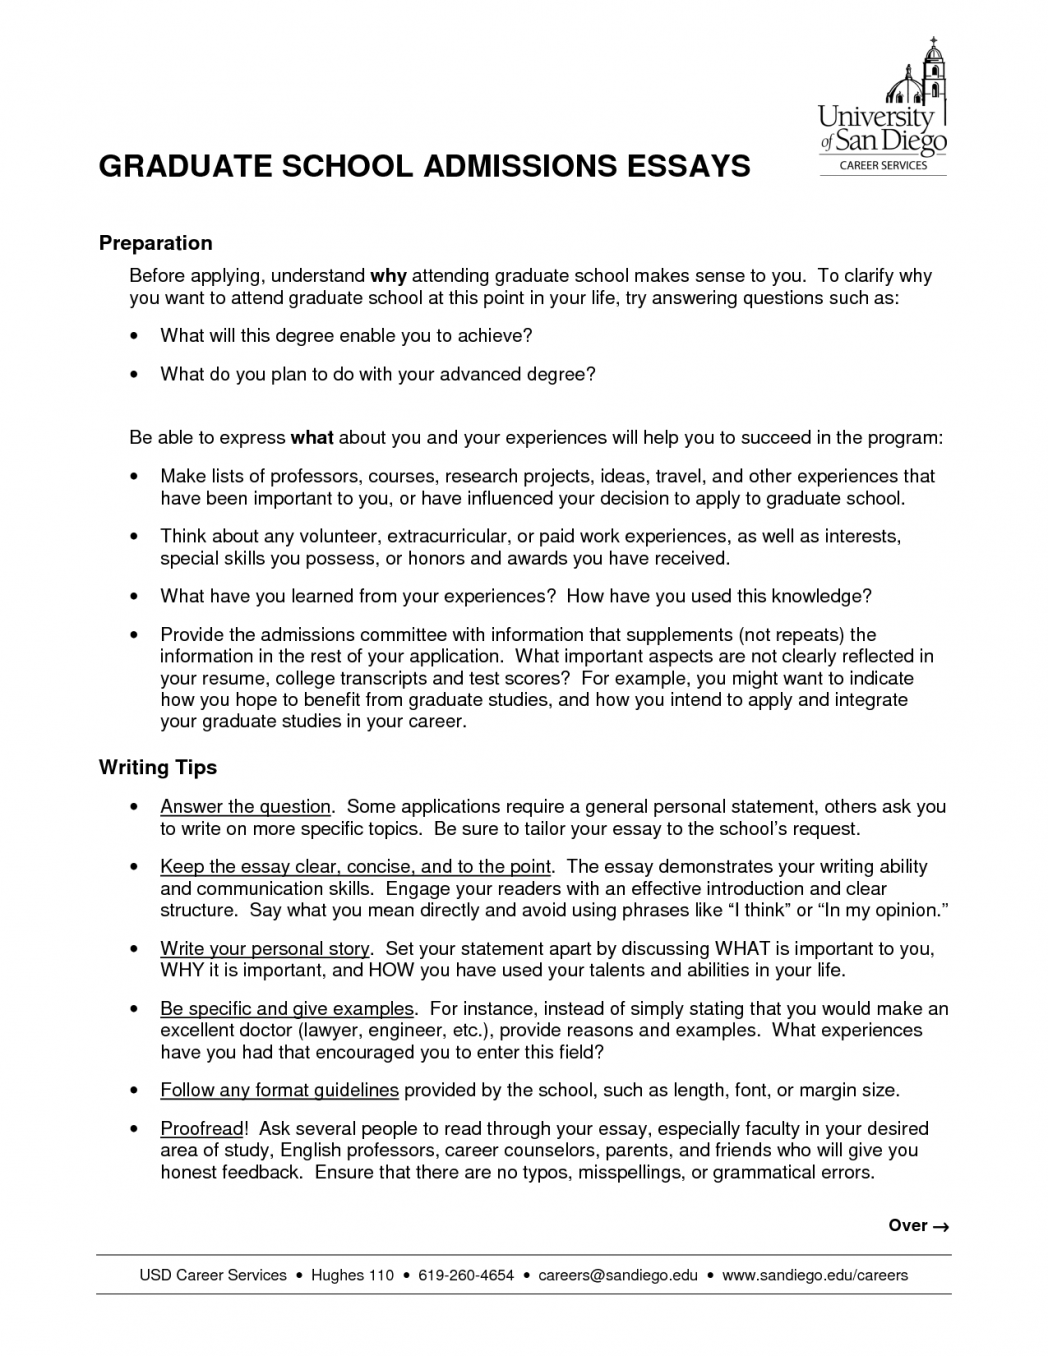 017 Essay Example Uw Application Professional Letter Writing For Hire Masters Sample Questions Madison La Crosse Question Milwaukee Incredible Examples Transfer Full